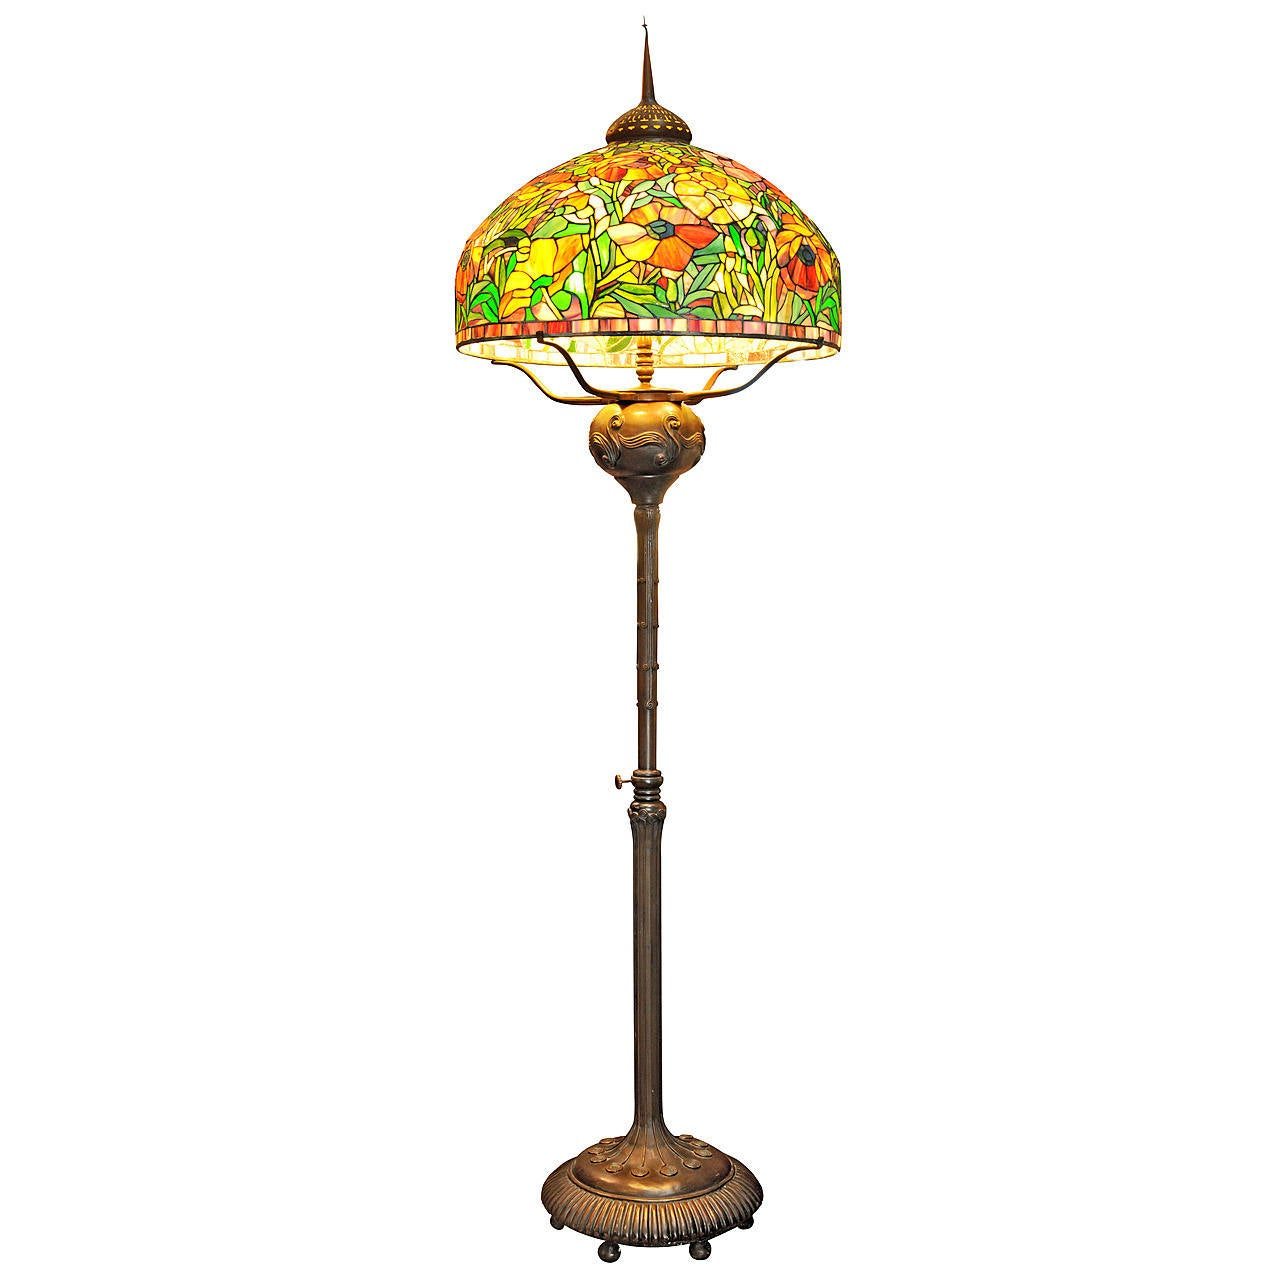 Murano gl floor lamp murano gl floor lamps 173 for at 1stdibs - Stained Glass Floor Lamp For Sale At 1stdibs Wallpaper Gallery Floor Lamp Stained Gl For